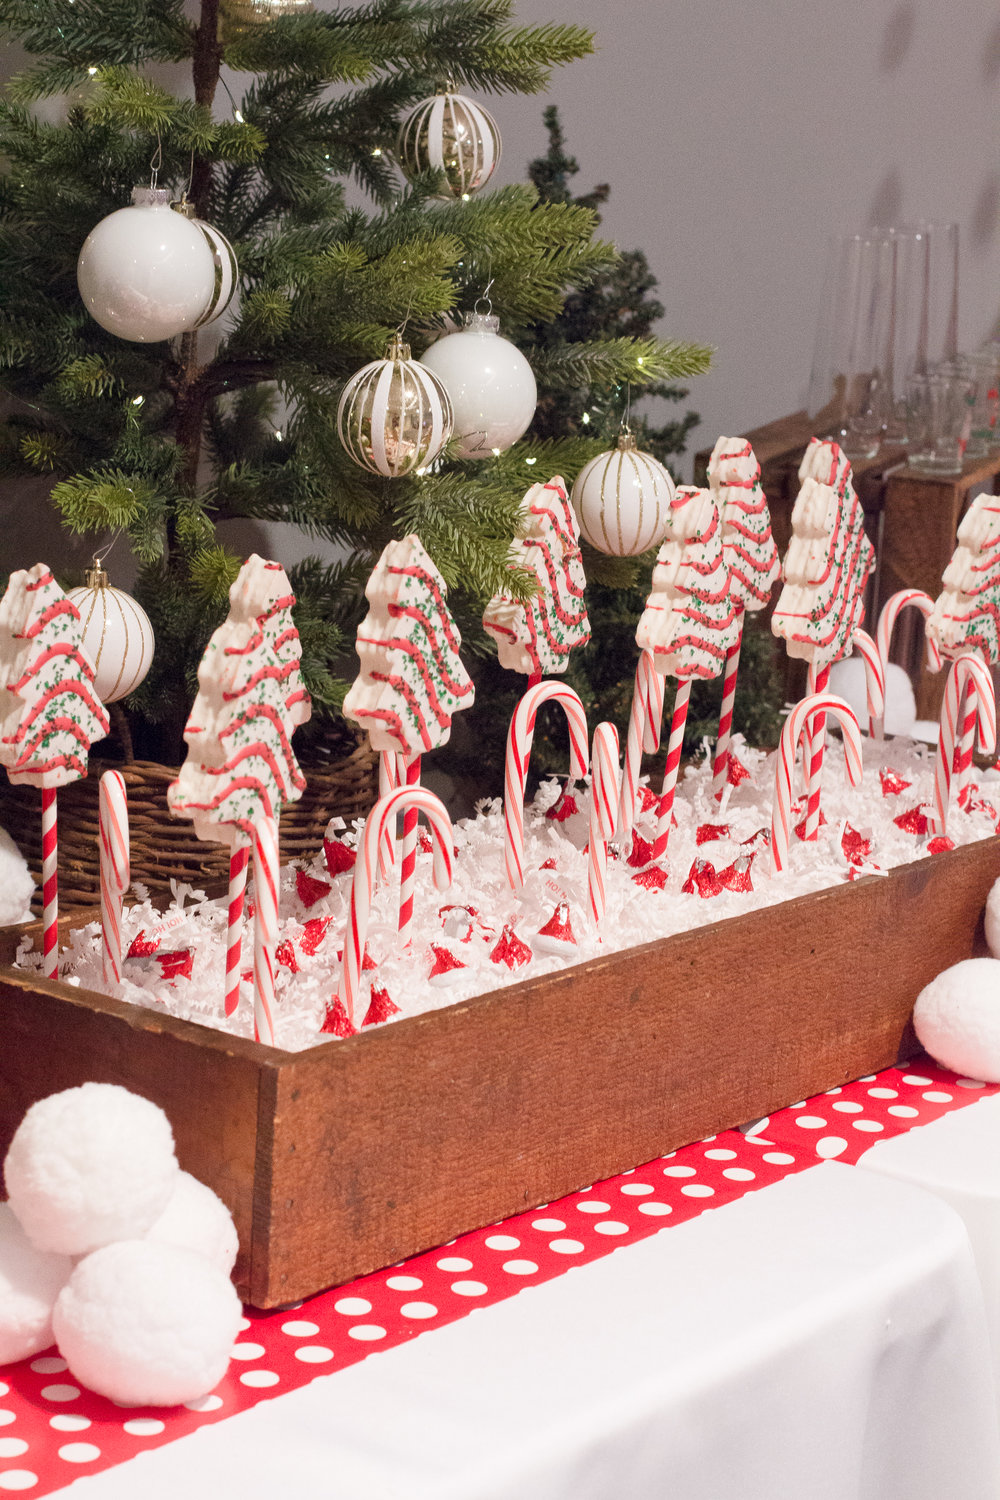 candy-cane-forest-2